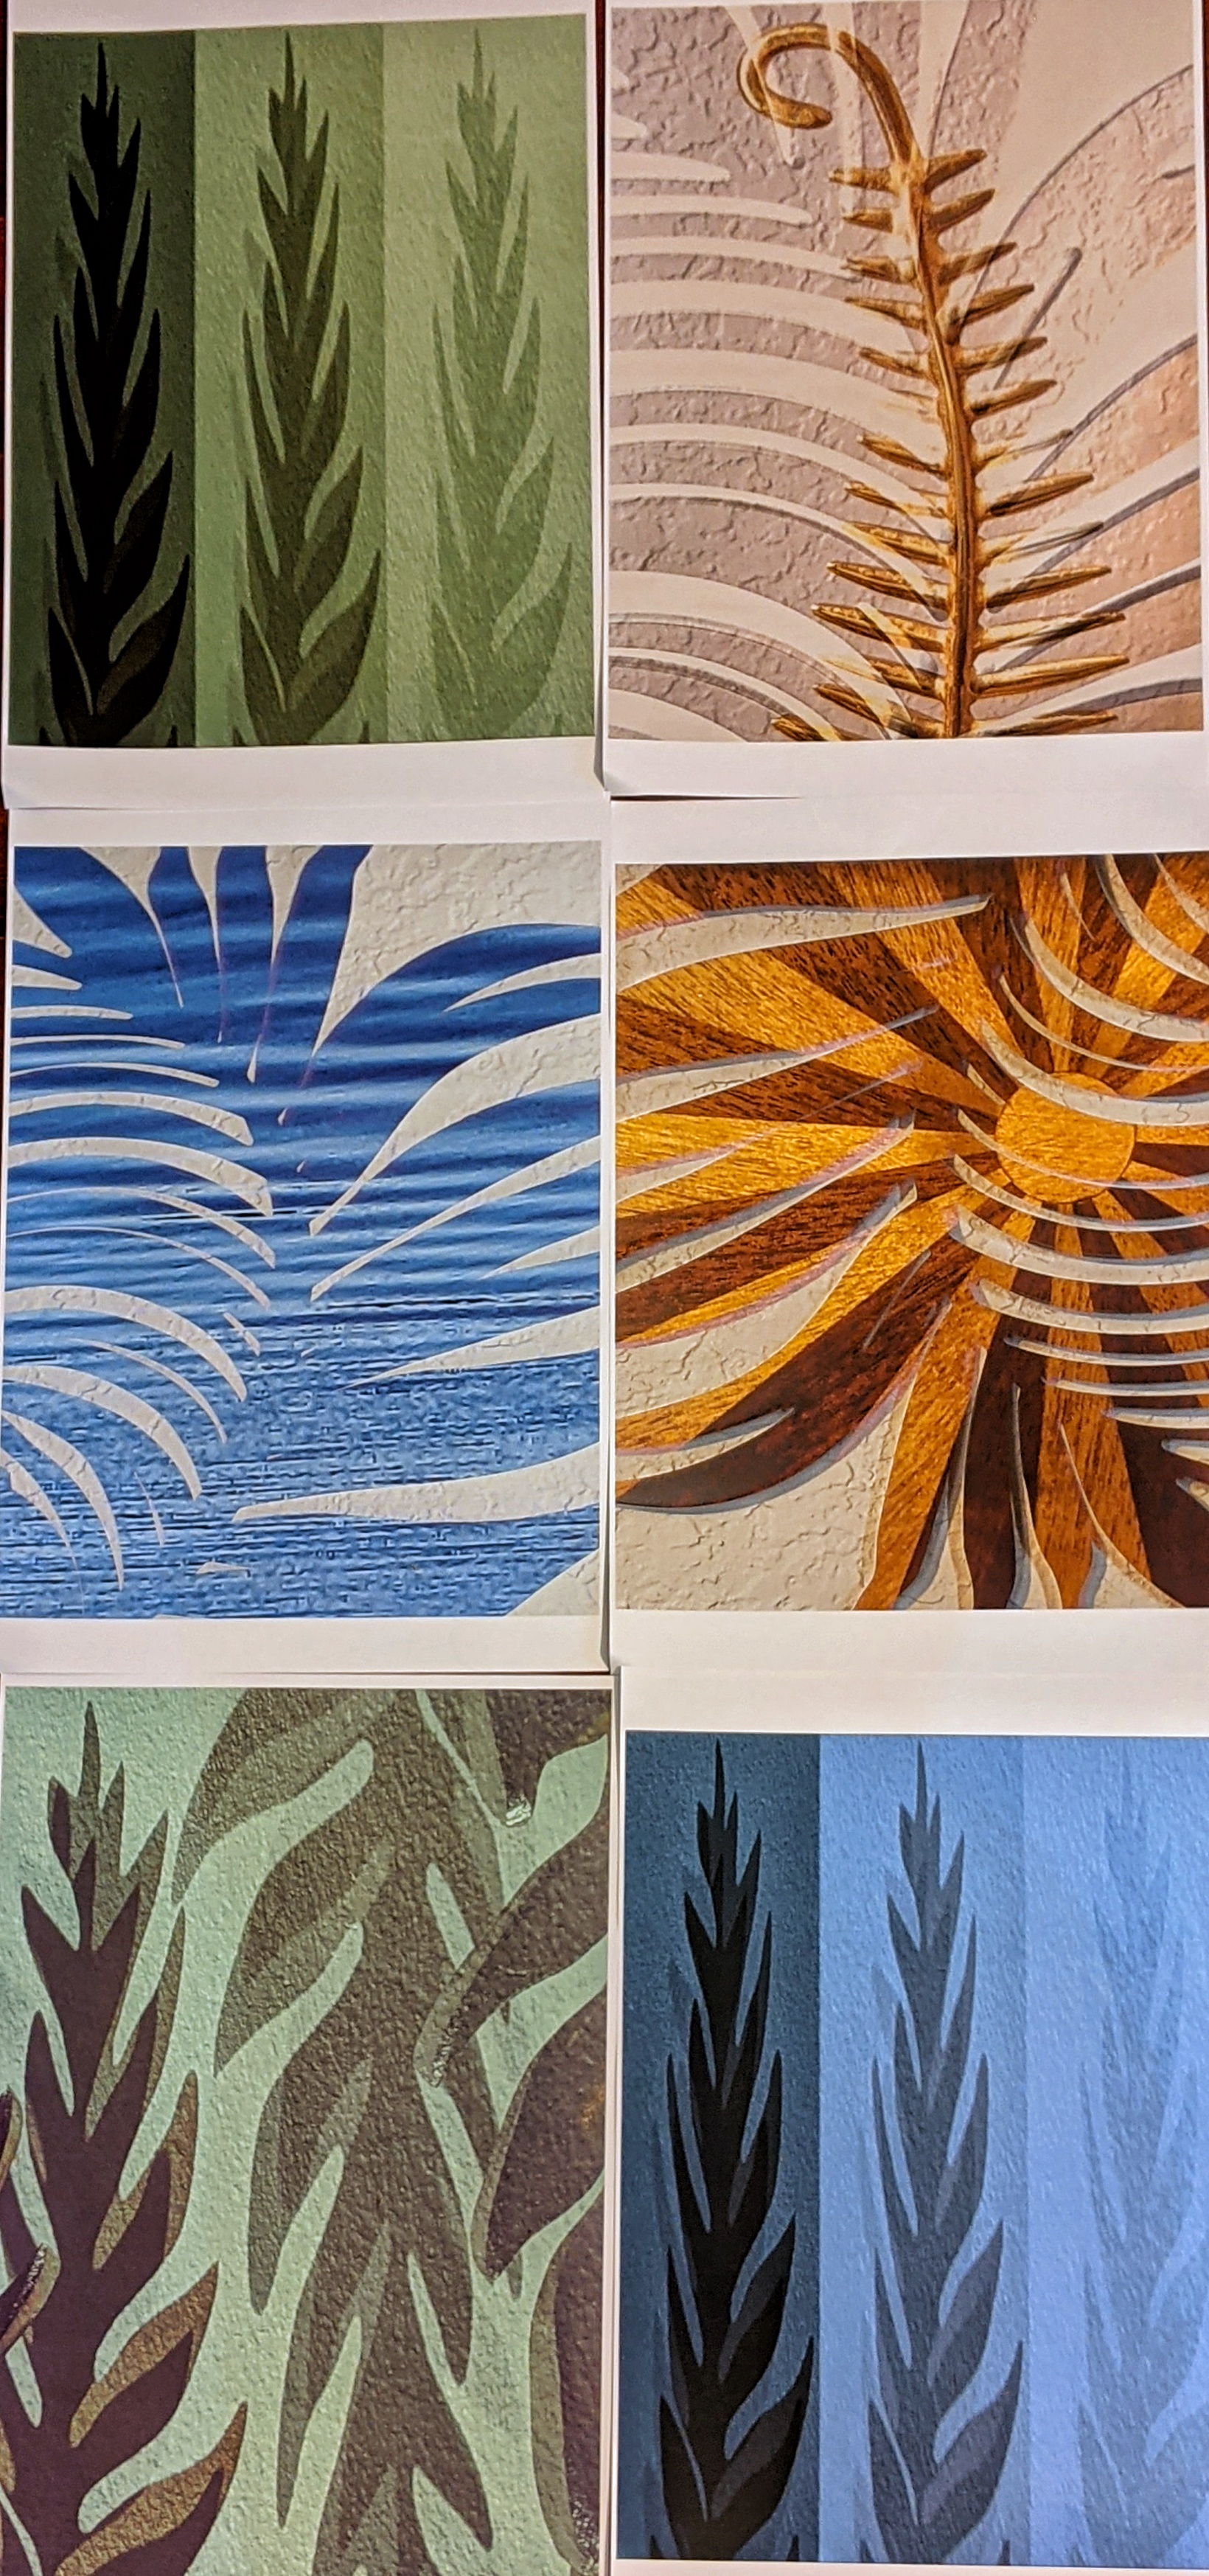 Frond Memories – the In My House Series photo series becomes Public Art